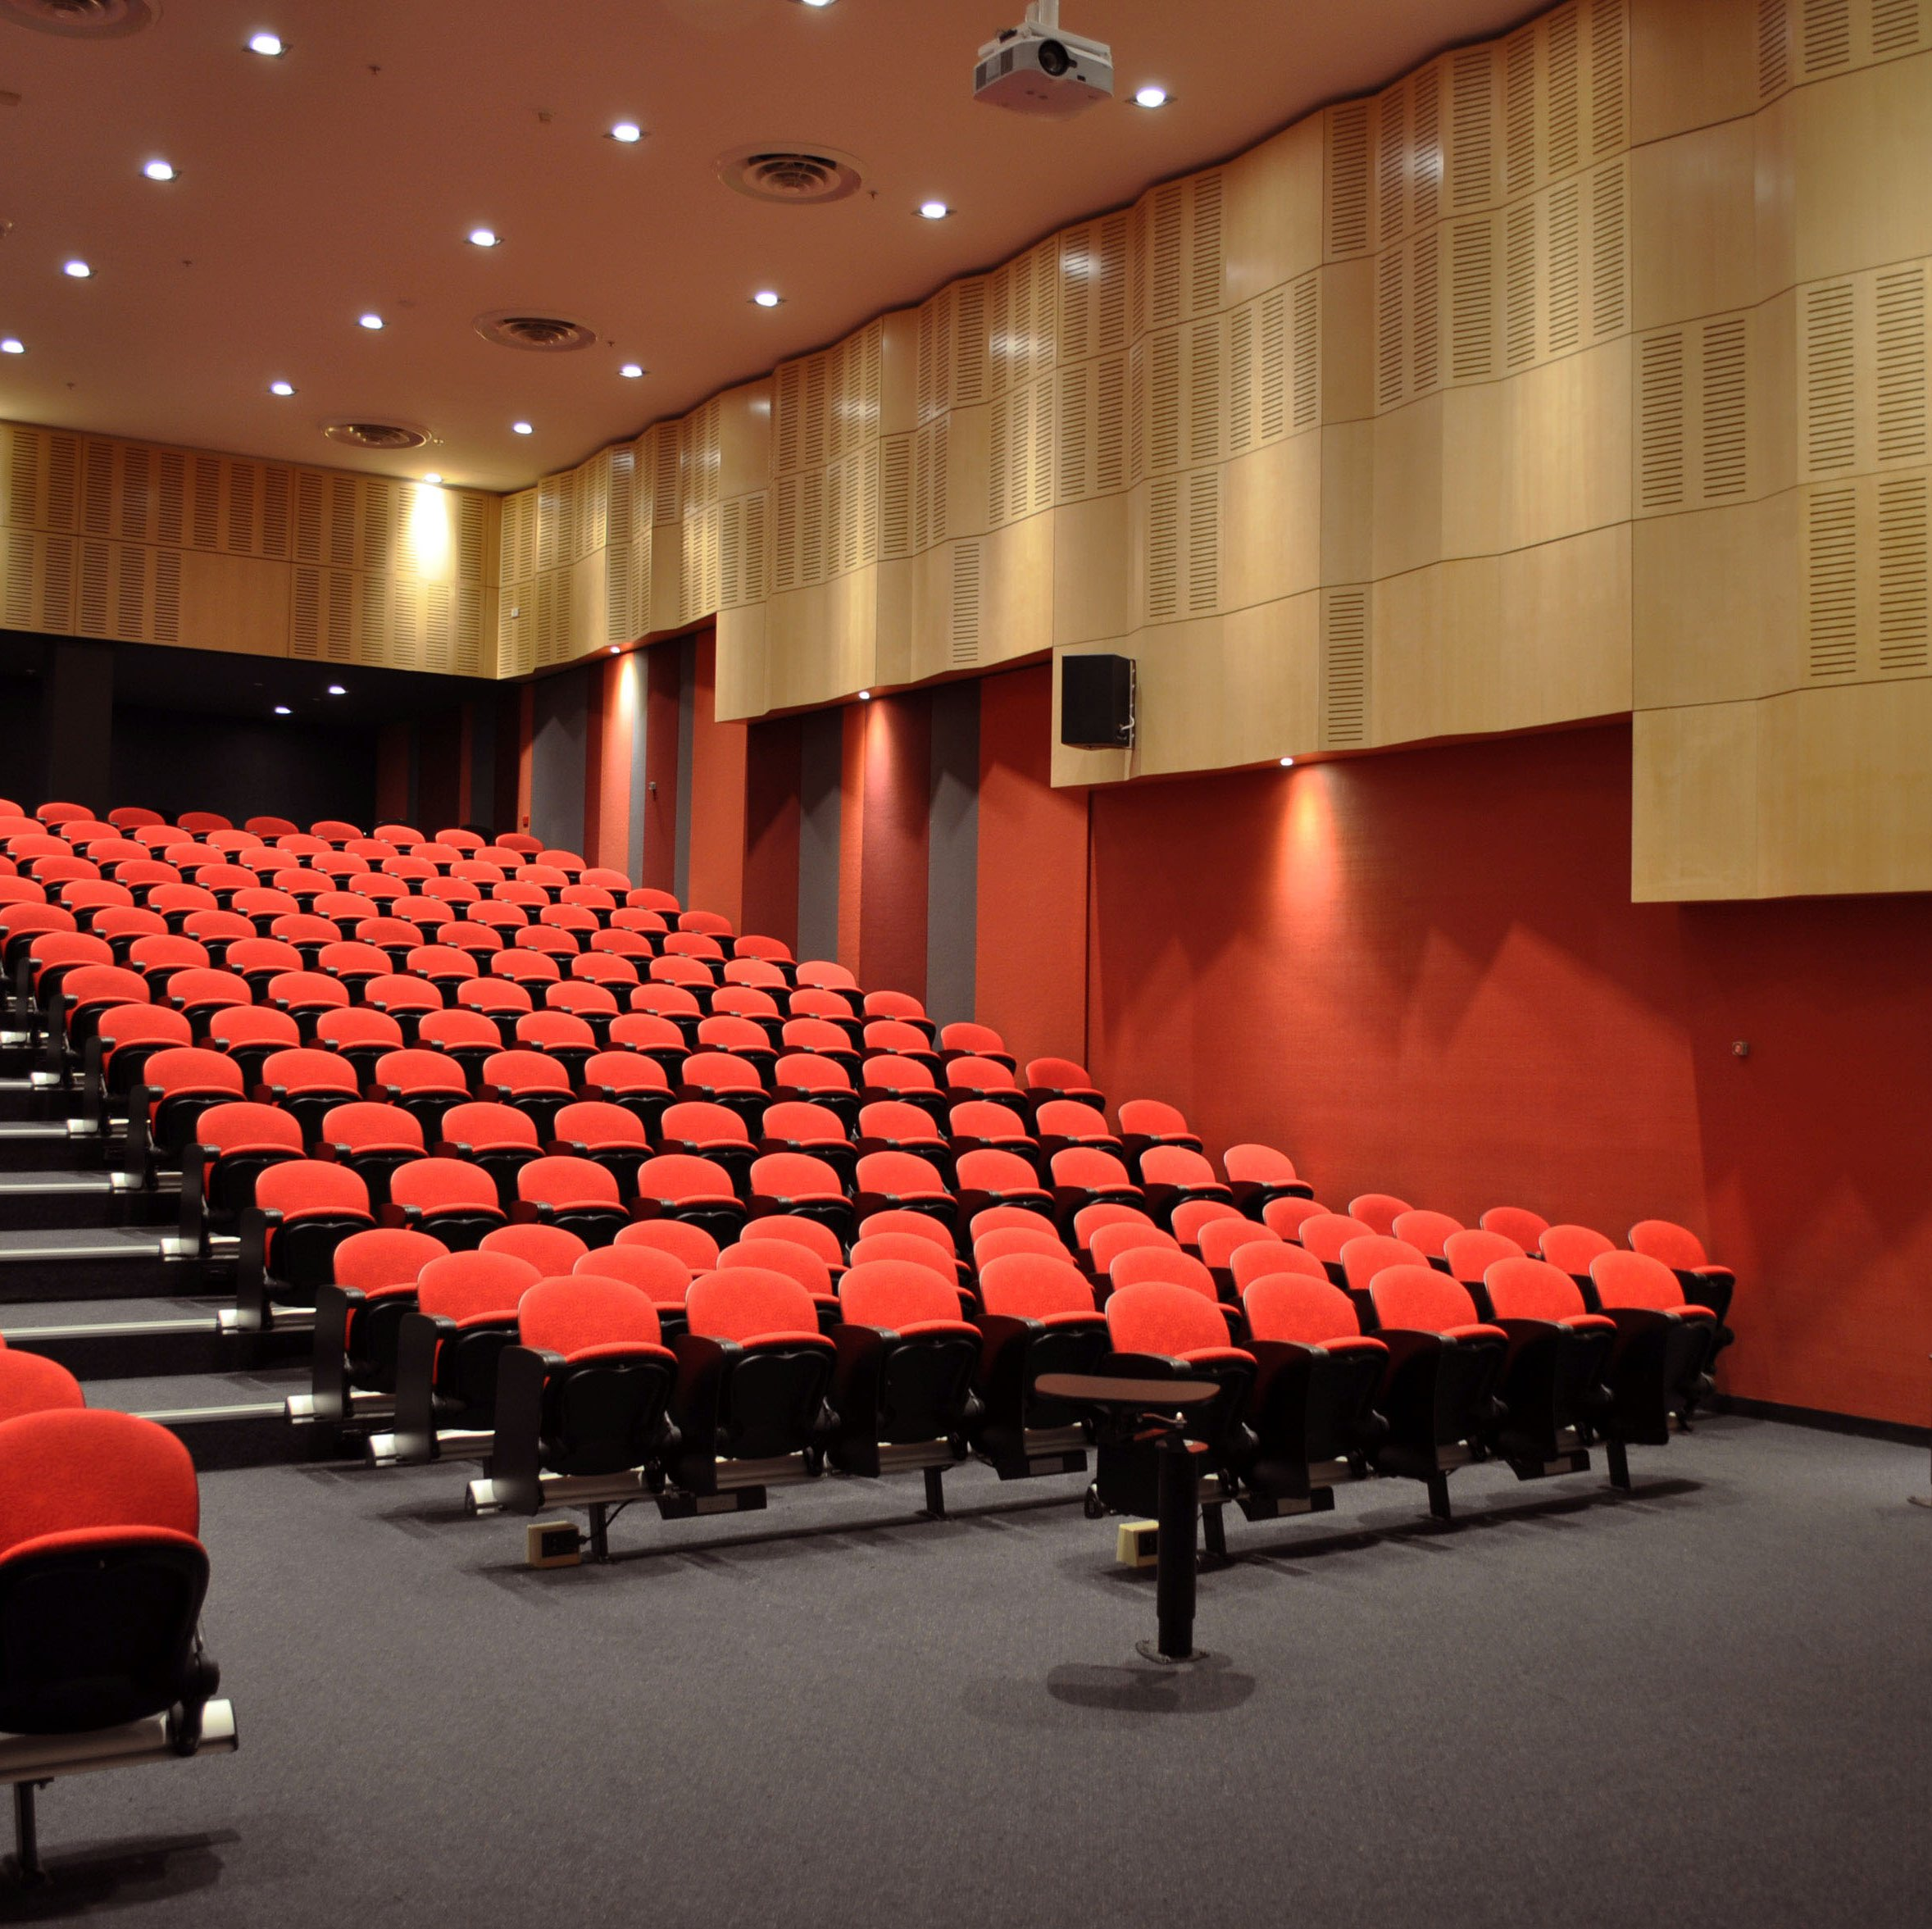 UniSA CWE | BH2-09 Lecture Theatre Refurbishment   Services: BESTEC Contractor: Harrold & Kite Photographer: W+S